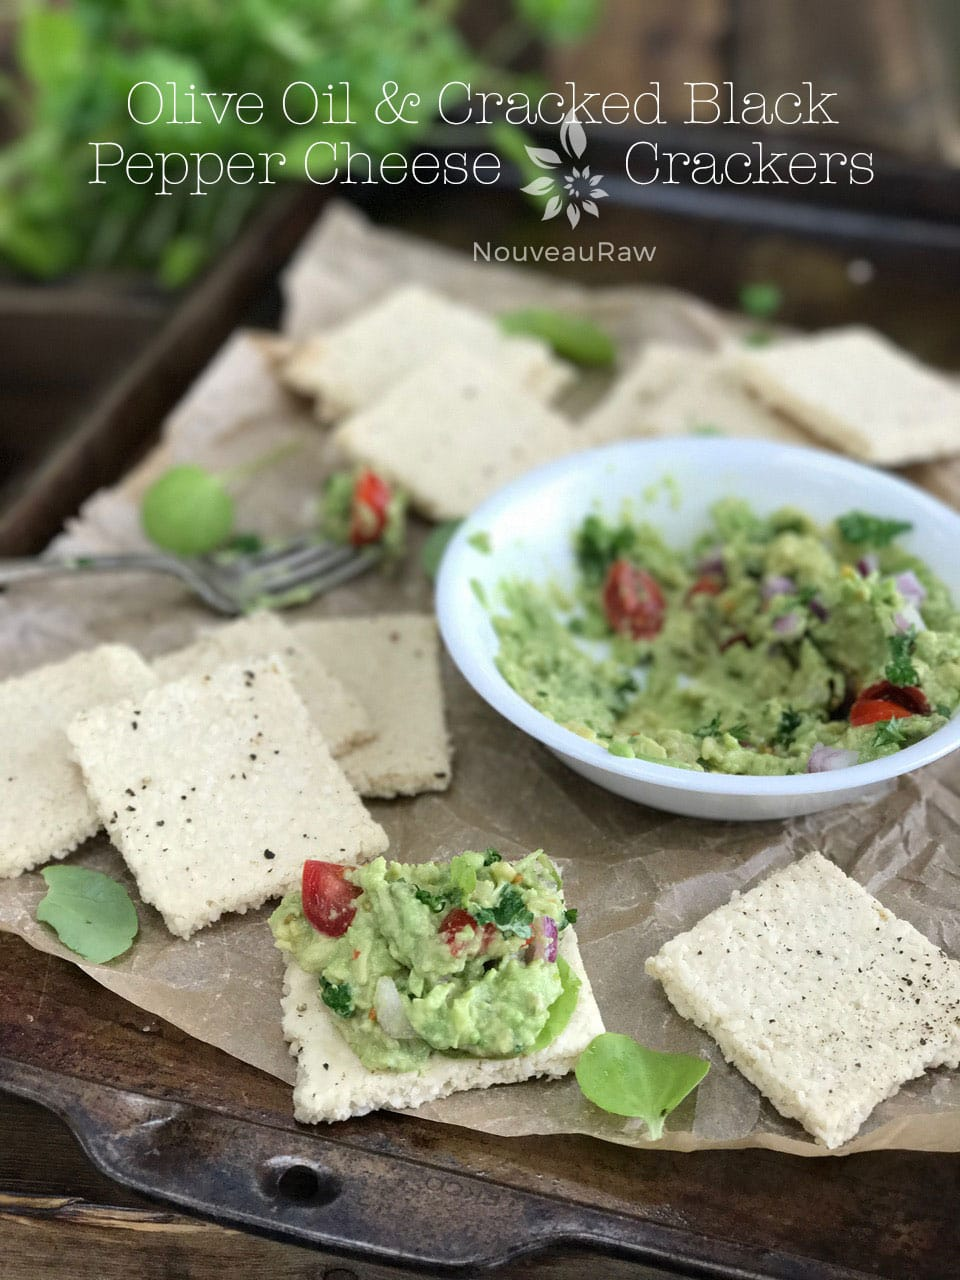 Raw, Gluten Free Vegan Olive Oil and Cracked Black Pepper Cheese Crackers